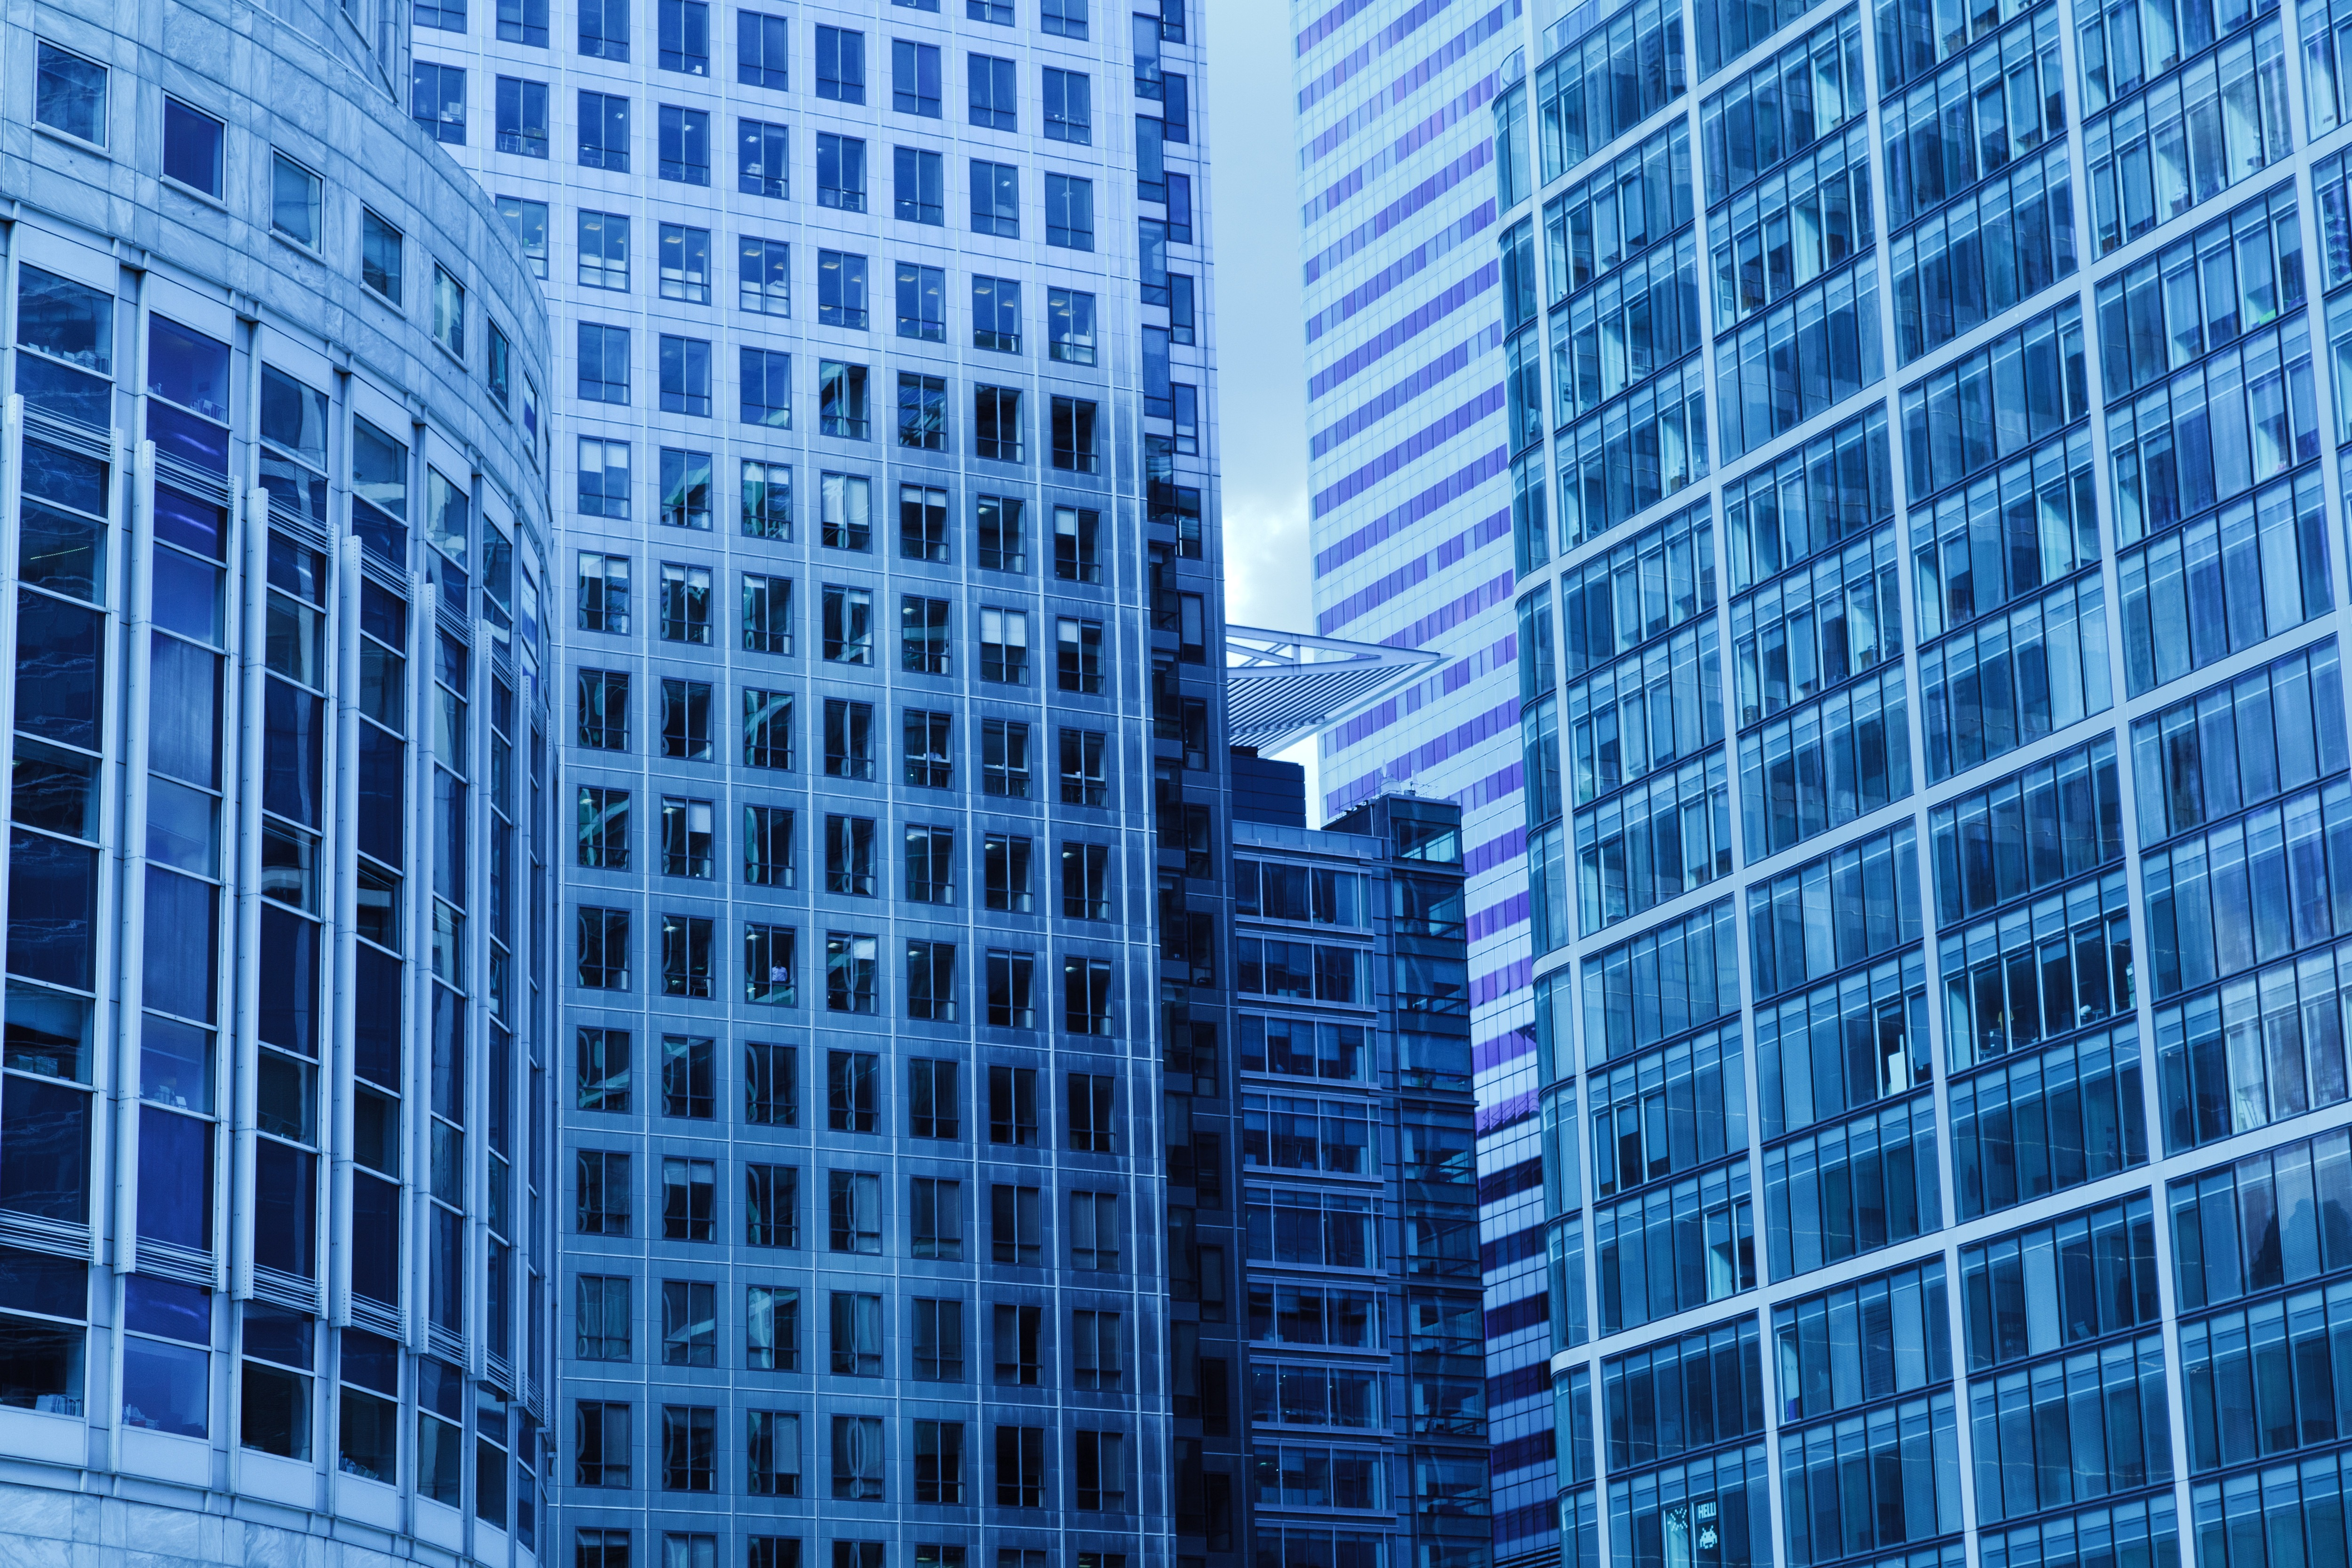 Building Construction Business : Free stock photo of architecture building business